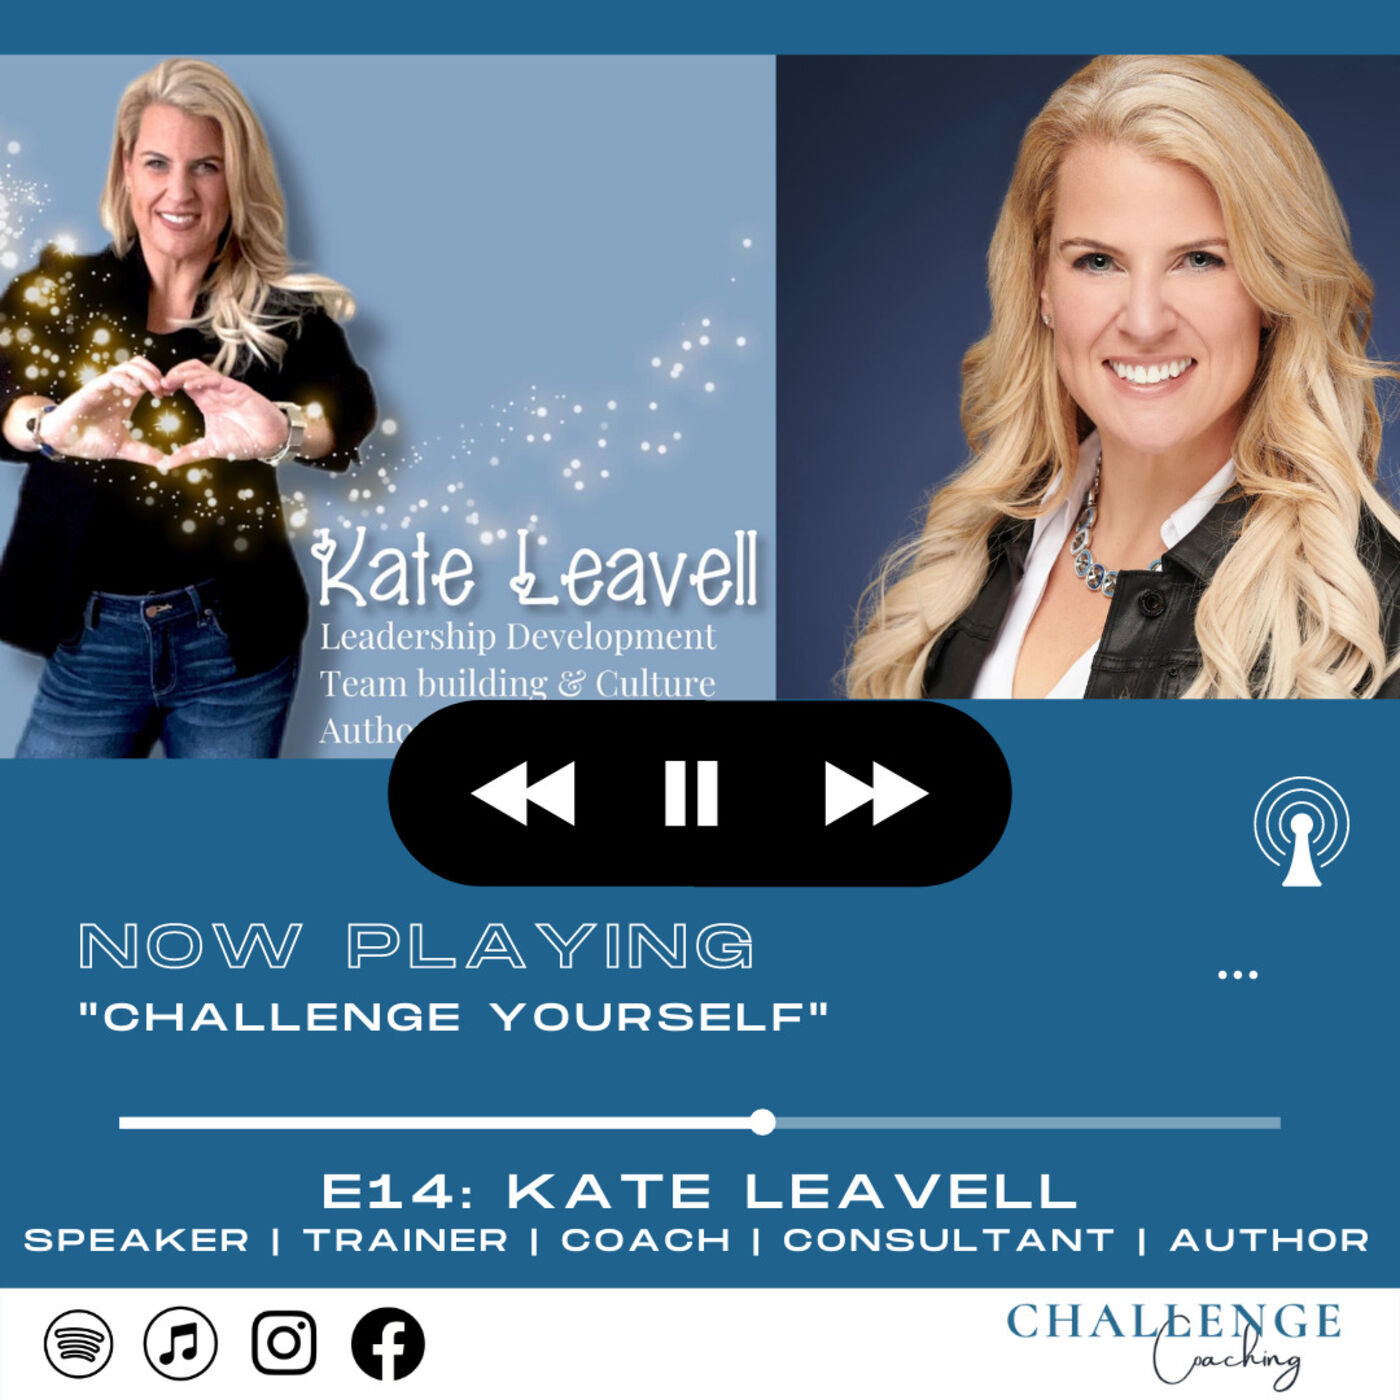 E14: Kate Leavell: Culture Building Consultant, Coach, Author